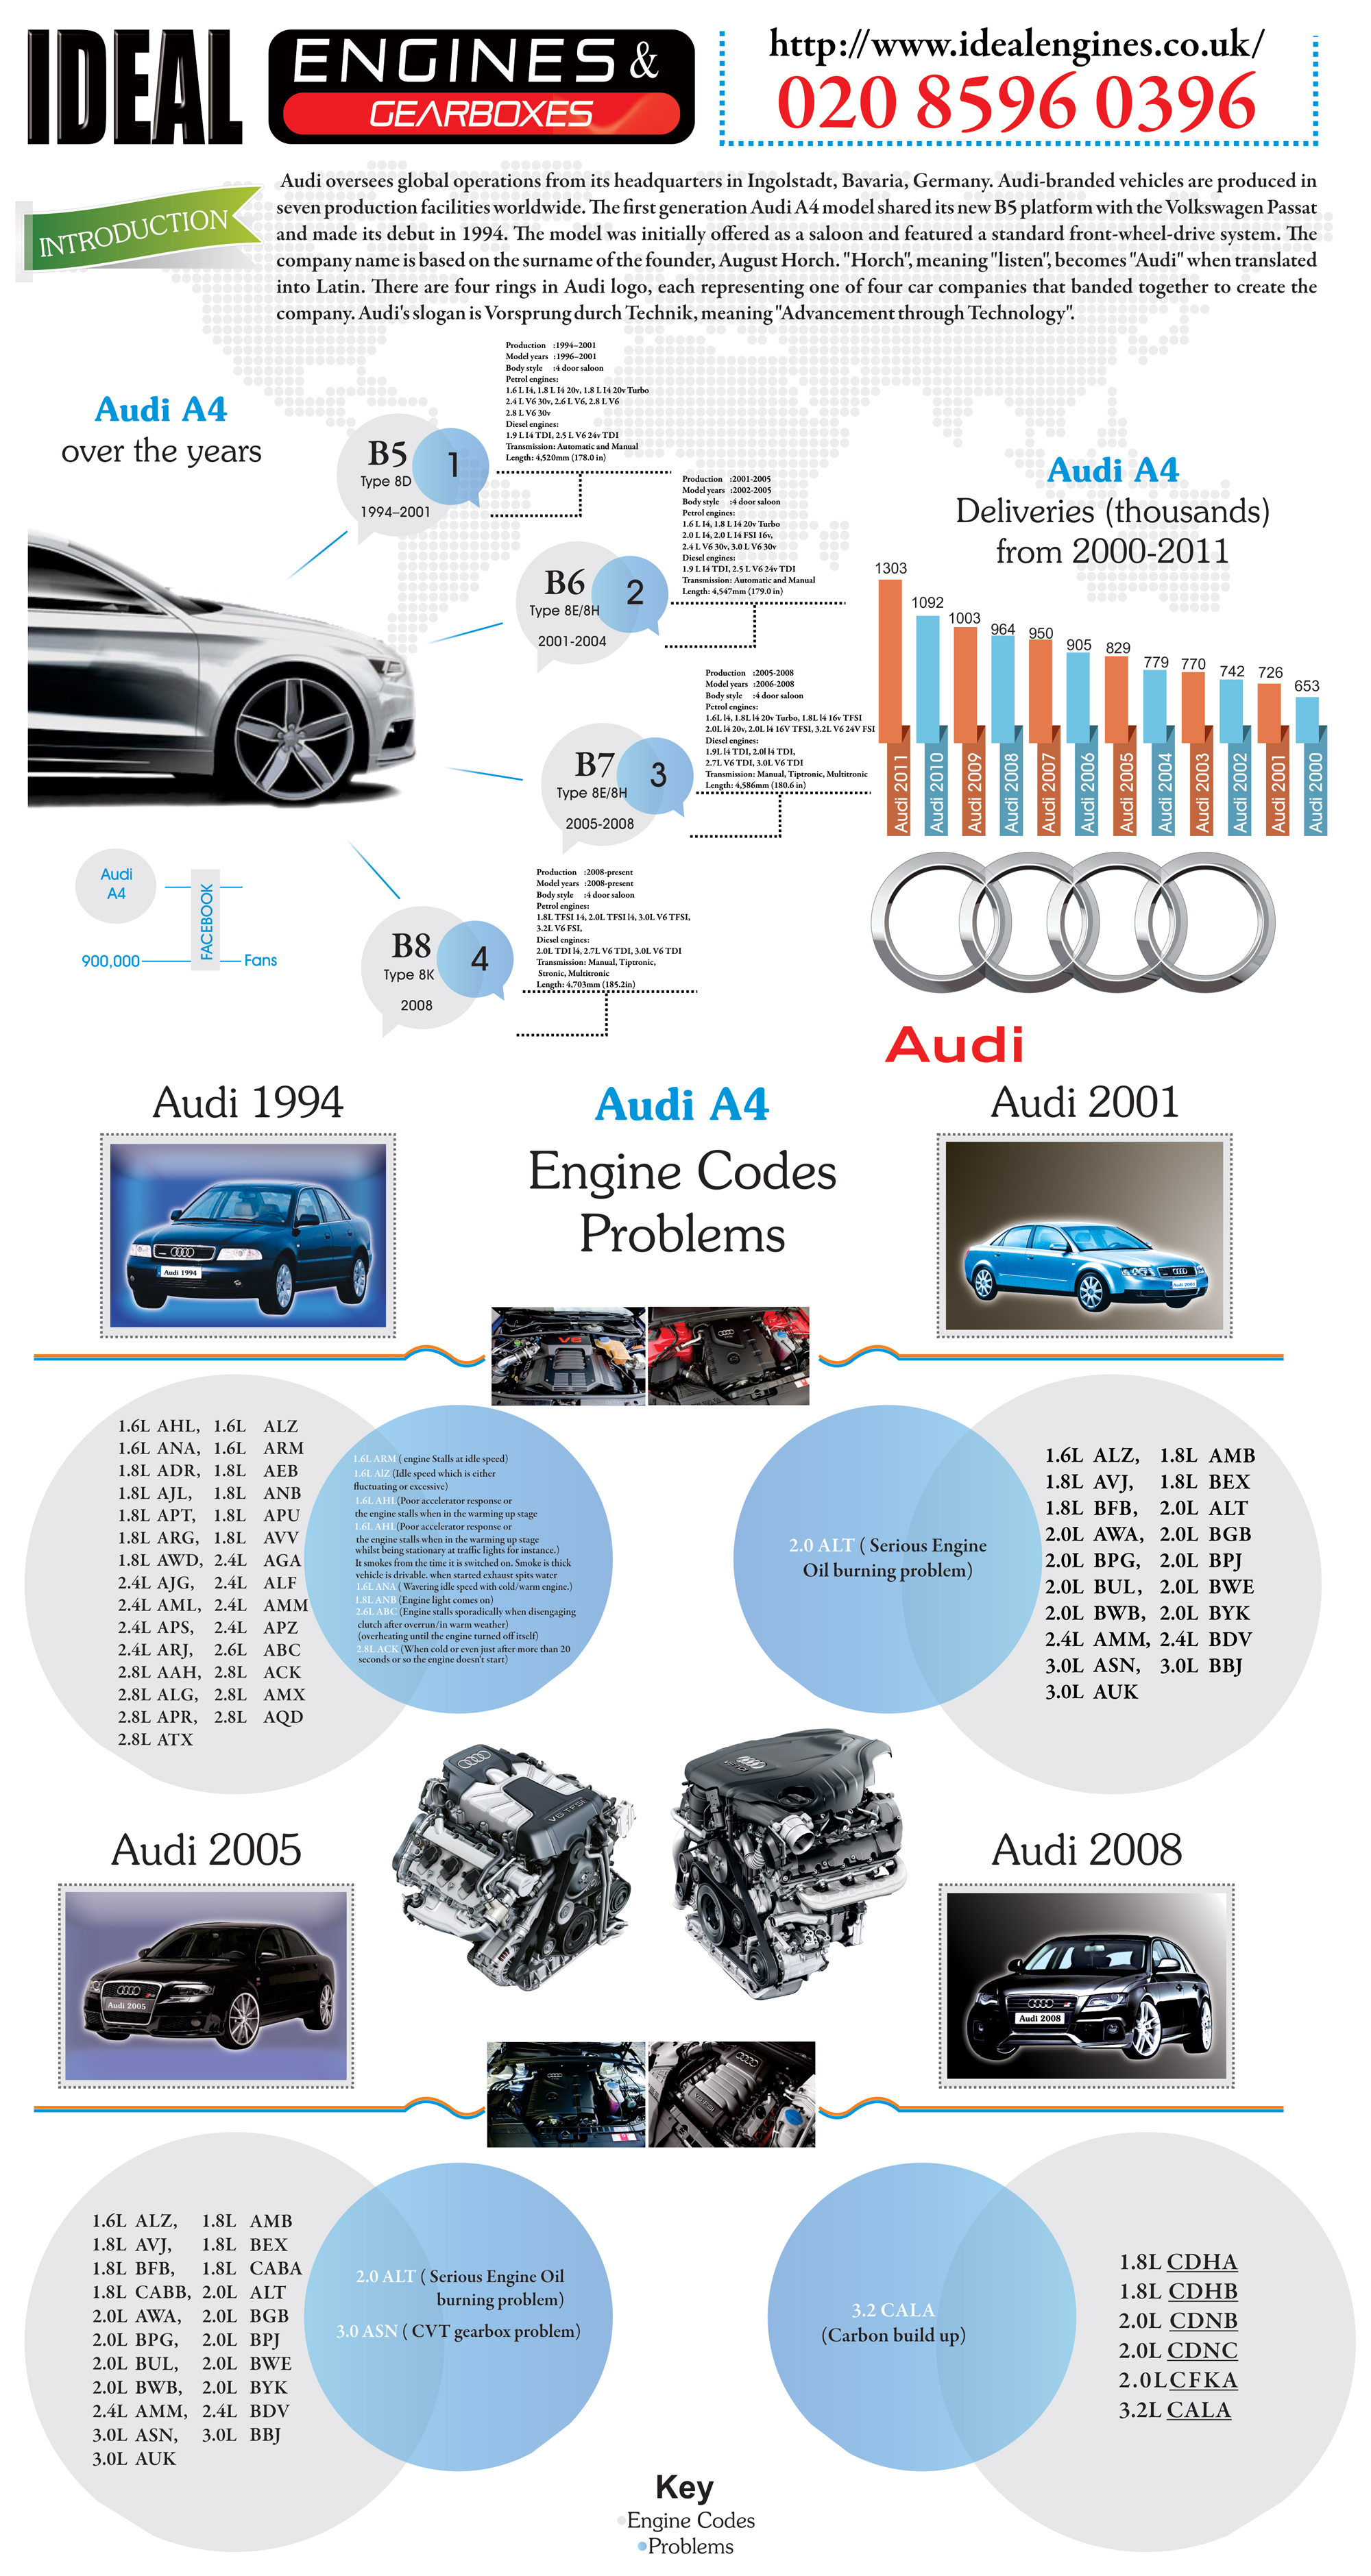 File Audi A4 Engine Infographic Jpg Wikimedia Commons